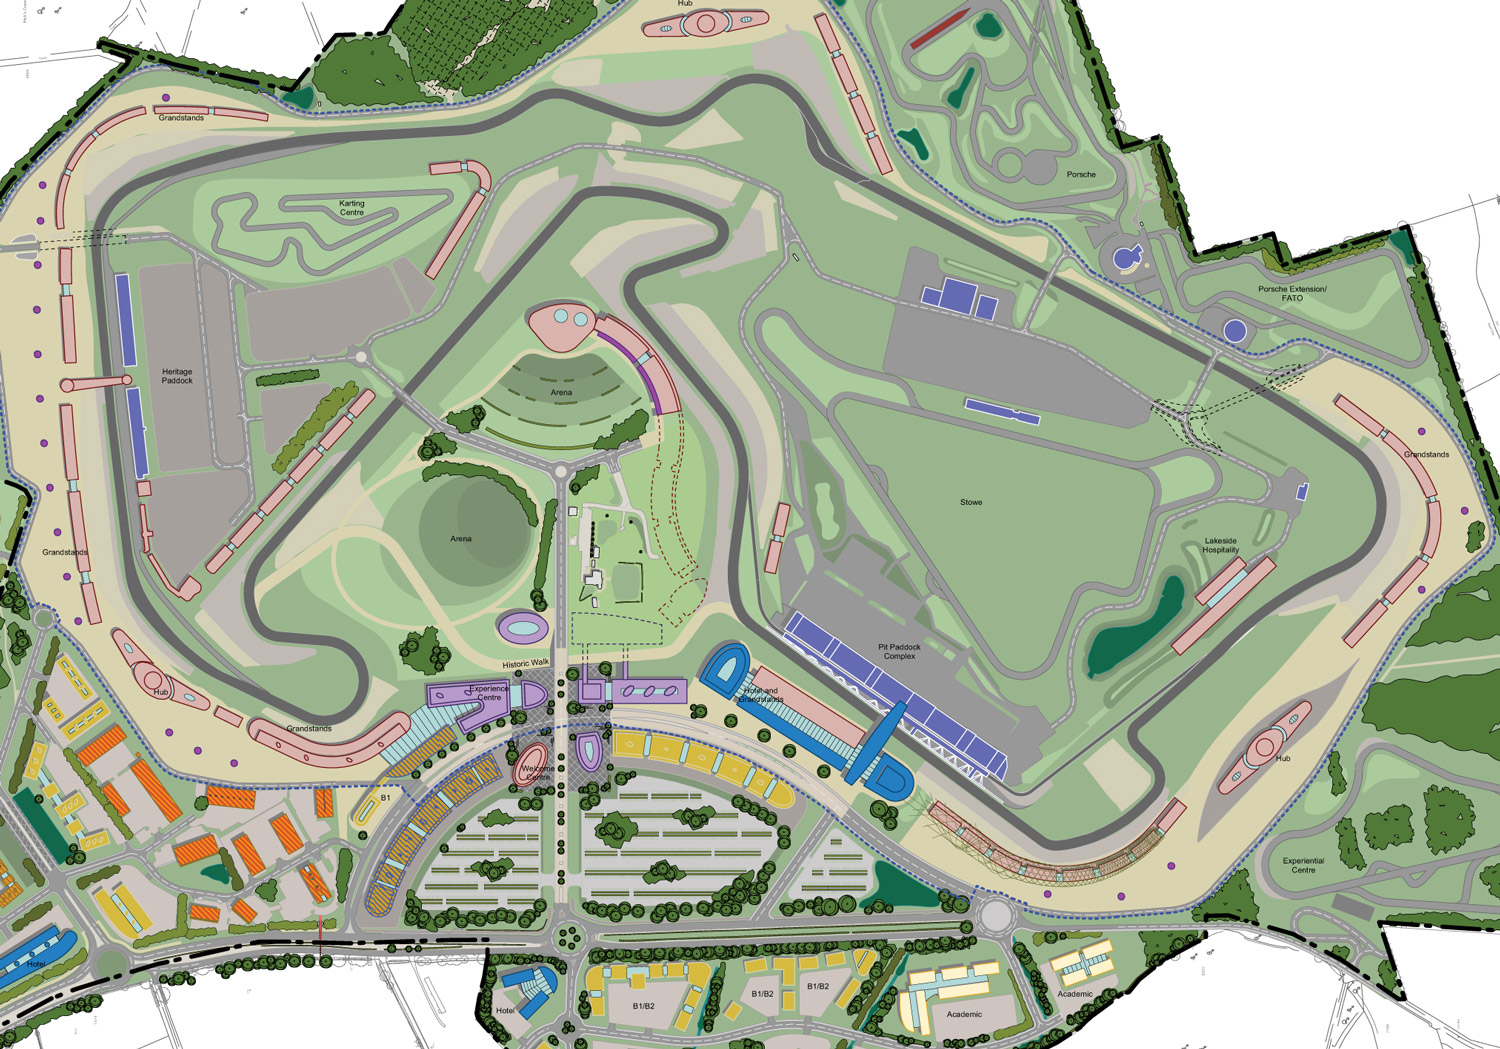 Silverstone Circuit Map >> Silverstone plans another major facilities upgrade - F1 - Autosport